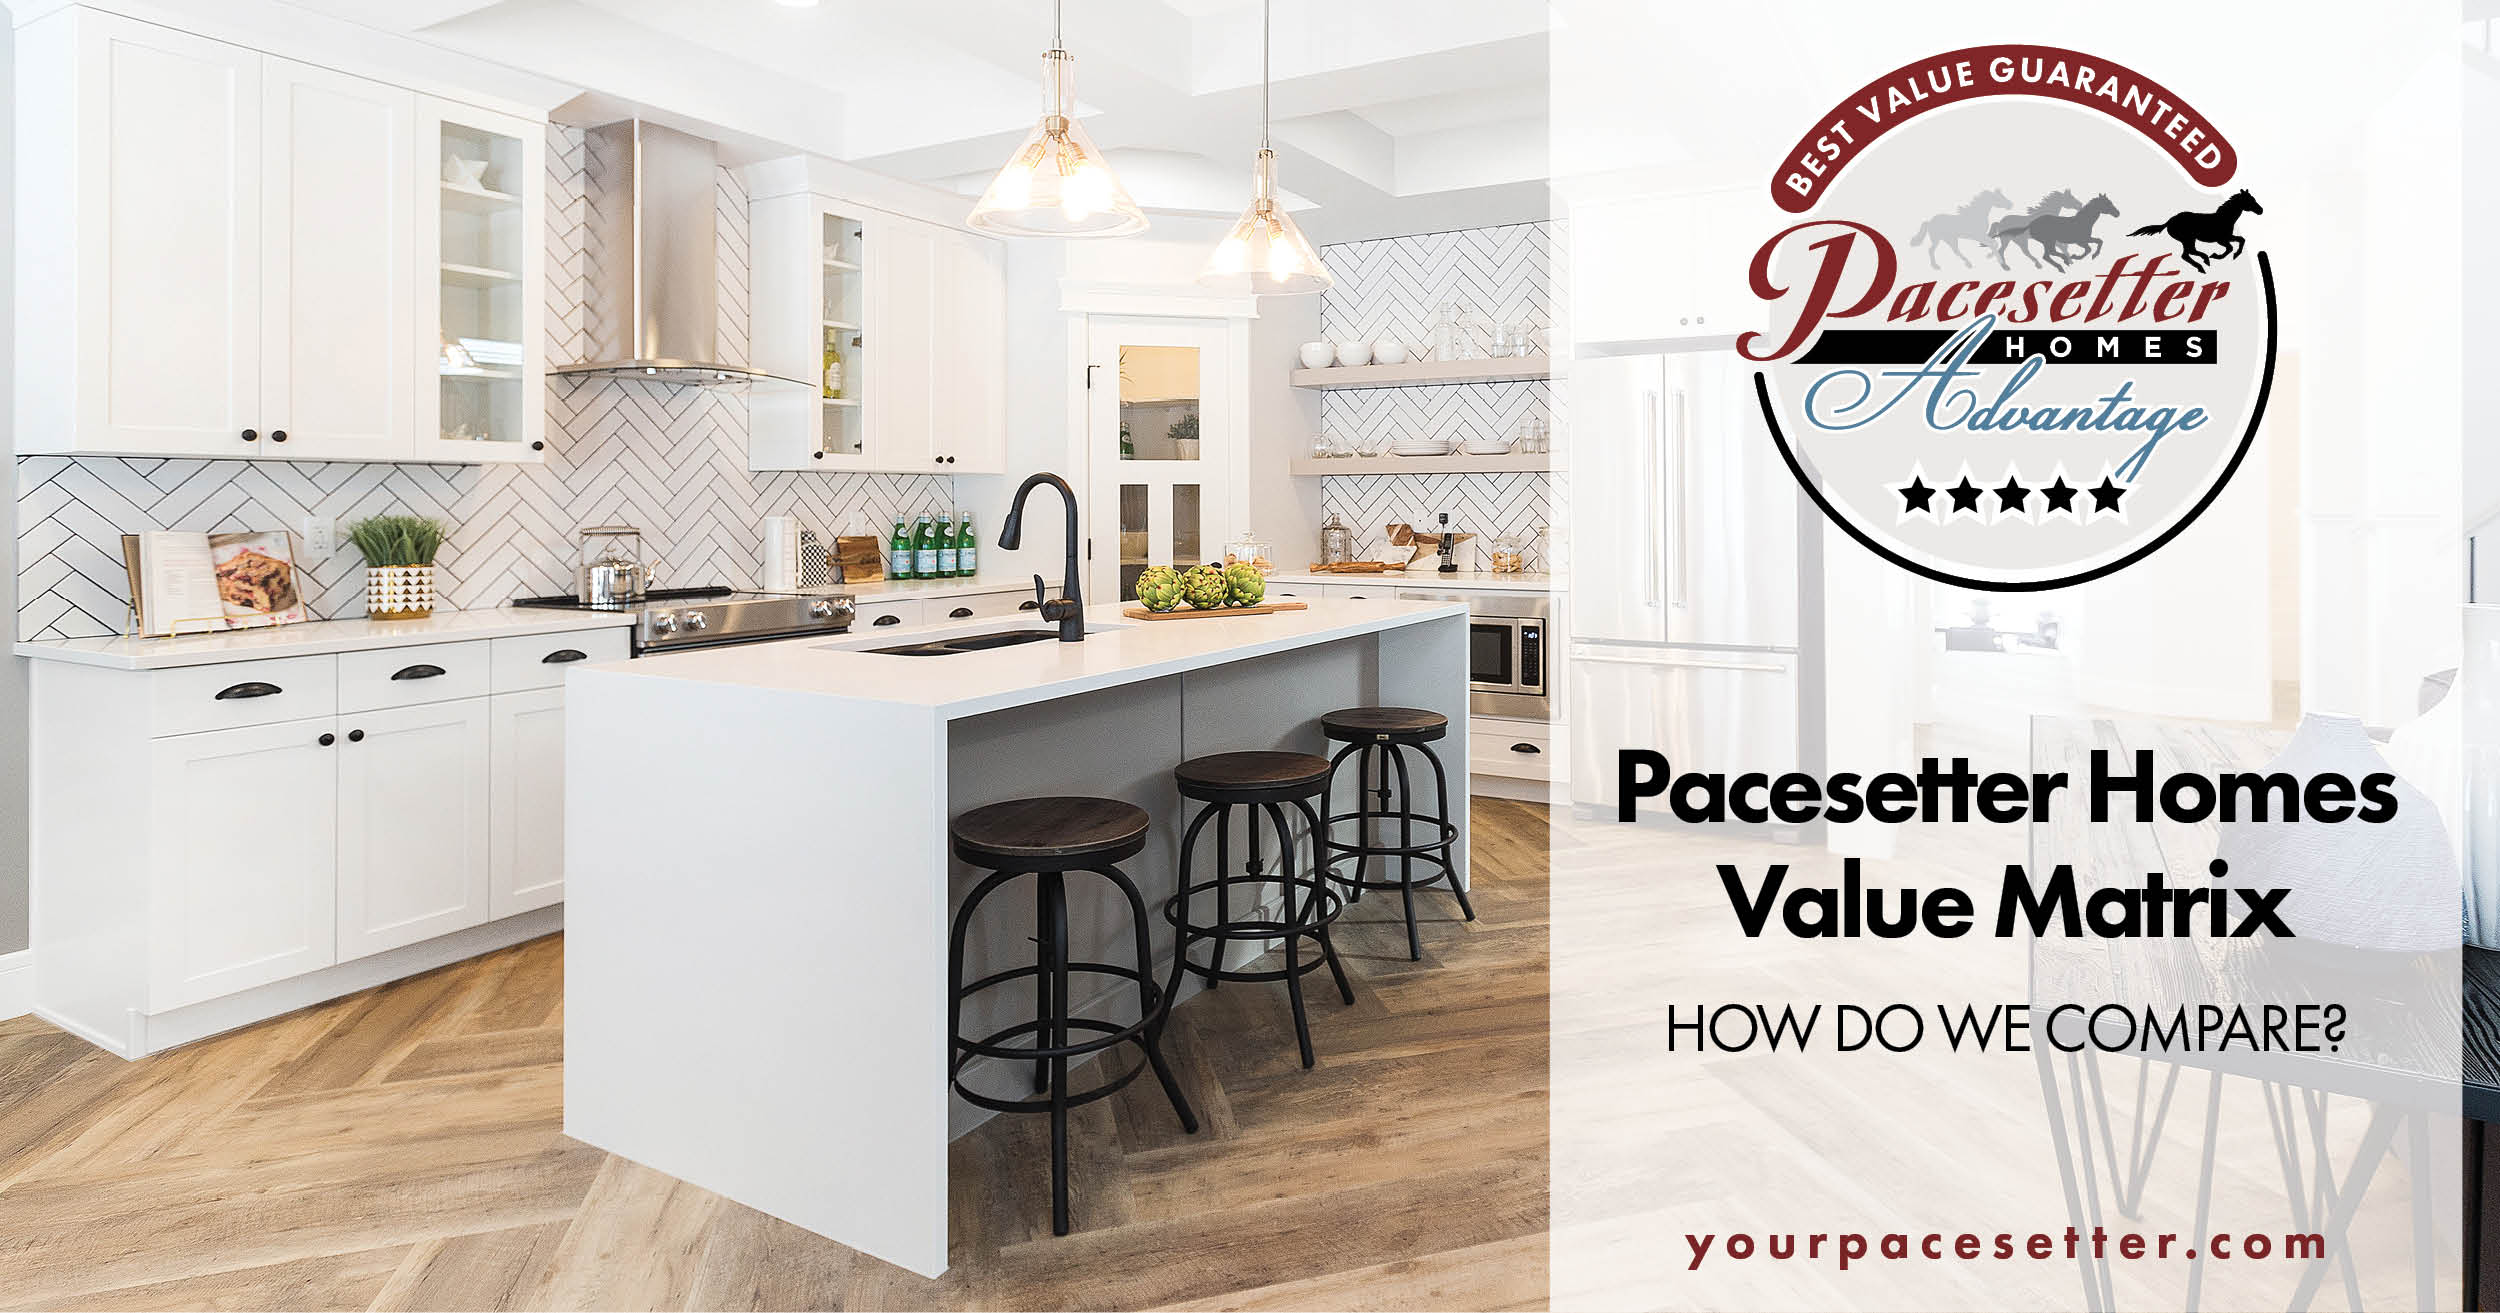 pacesetter_homes_bestvalue_sm_57.jpg